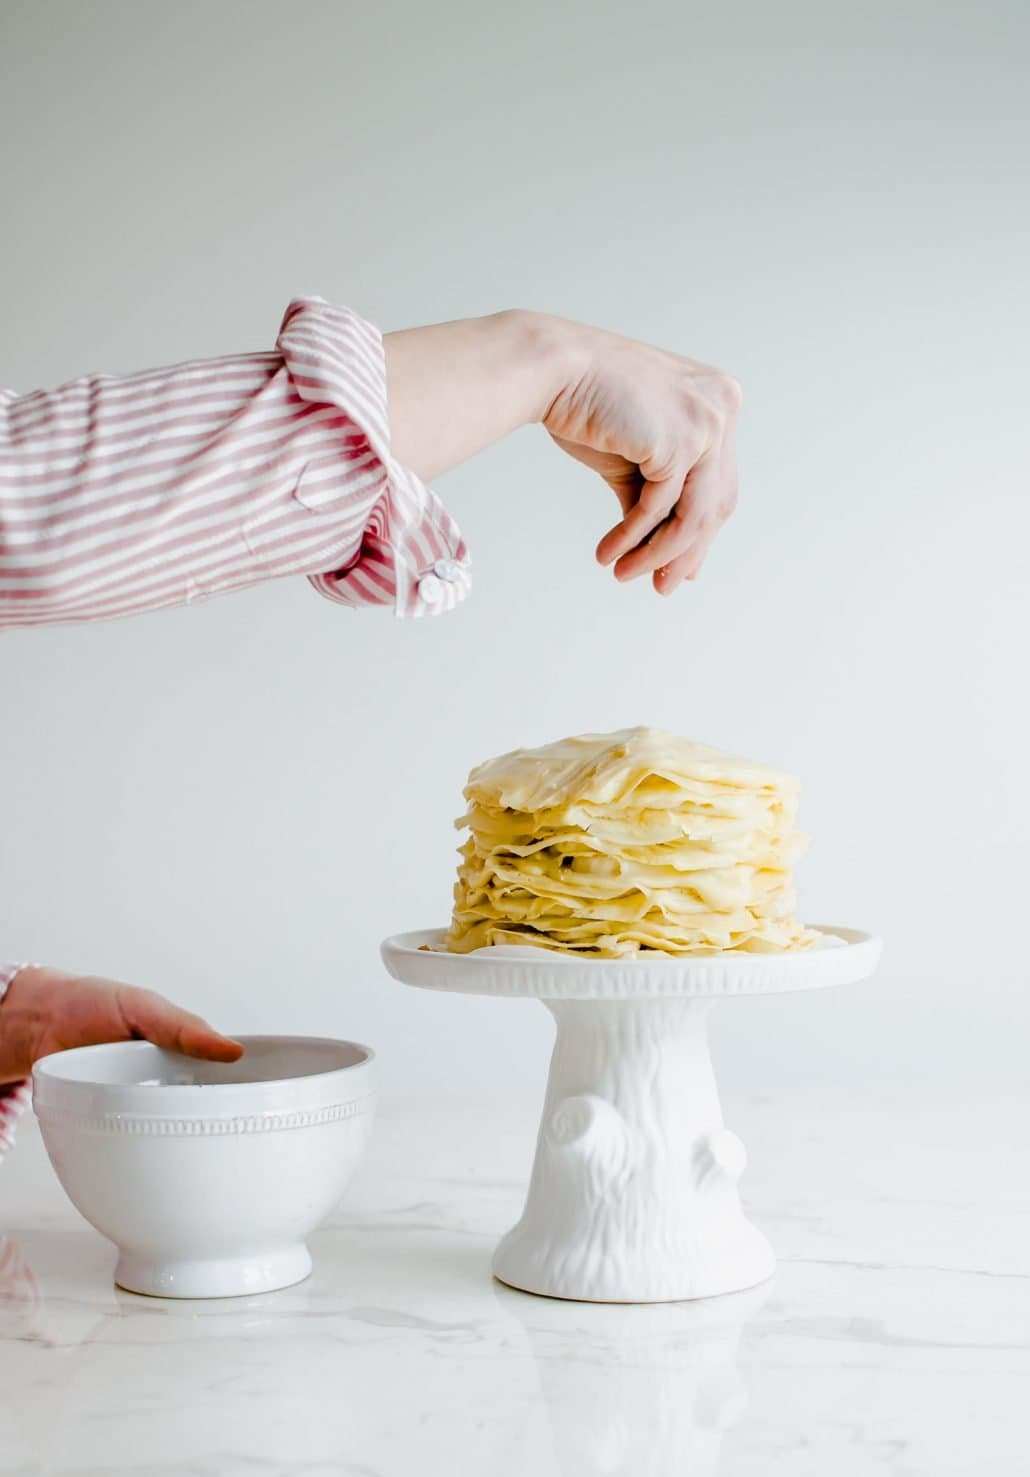 Side view of a woman's hand placing cookie crumbs on a banana pudding crepe cake agains a white background.